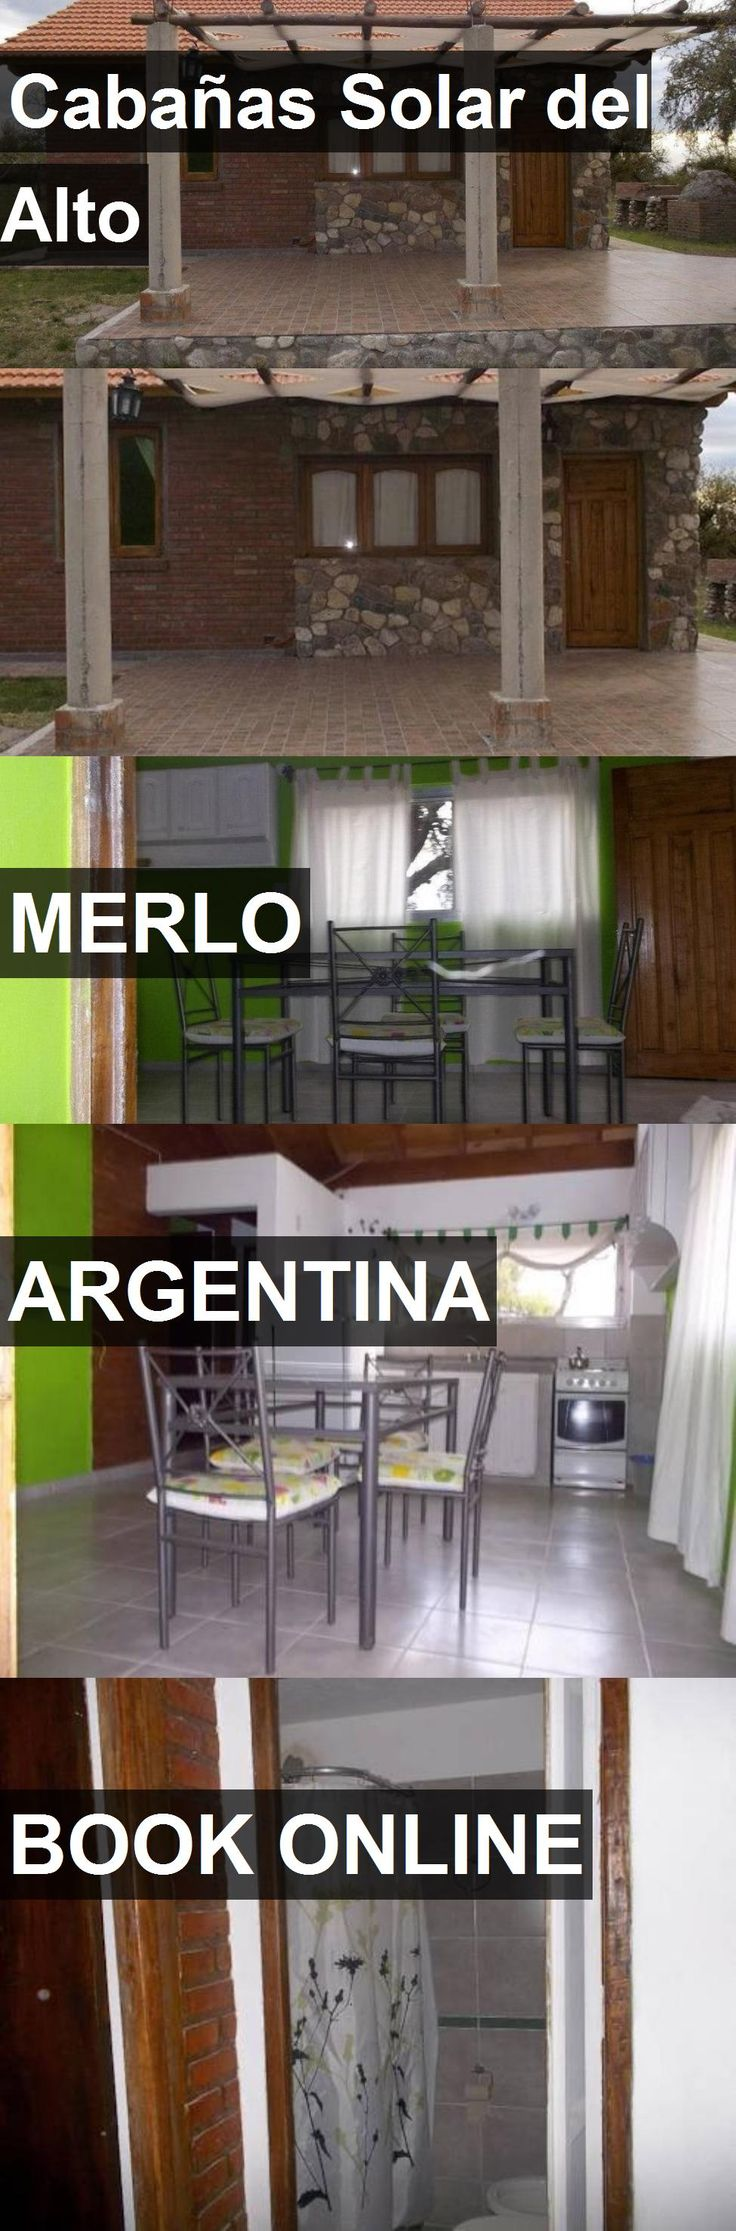 Hotel Cabañas Solar del Alto in Merlo, Argentina. For more information, photos, reviews and best prices please follow the link. #Argentina #Merlo #travel #vacation #hotel